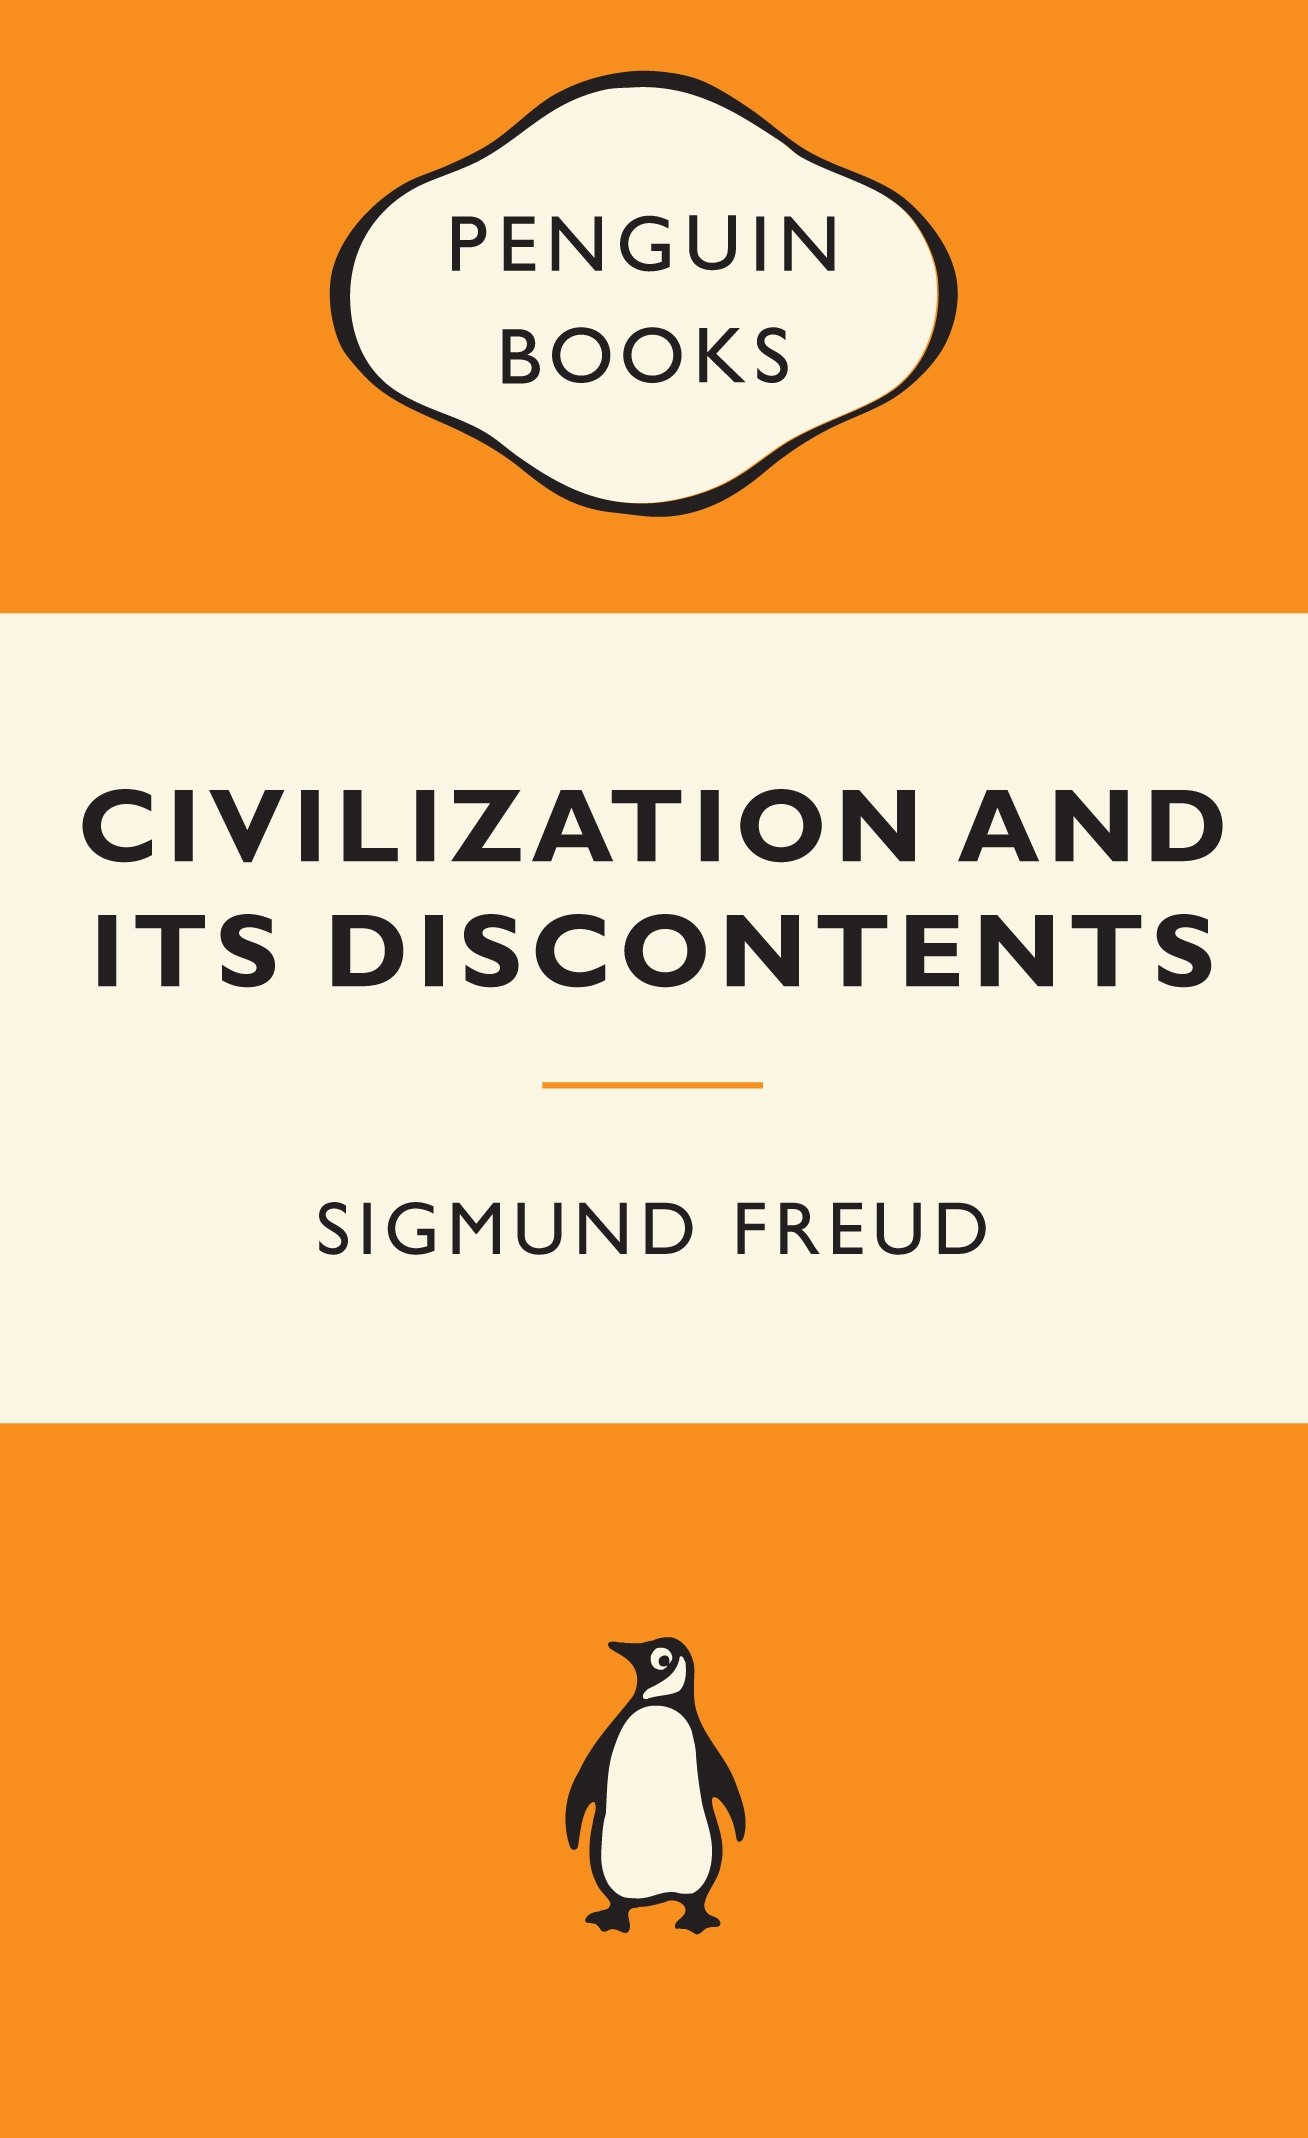 civilization and its discontents analysis